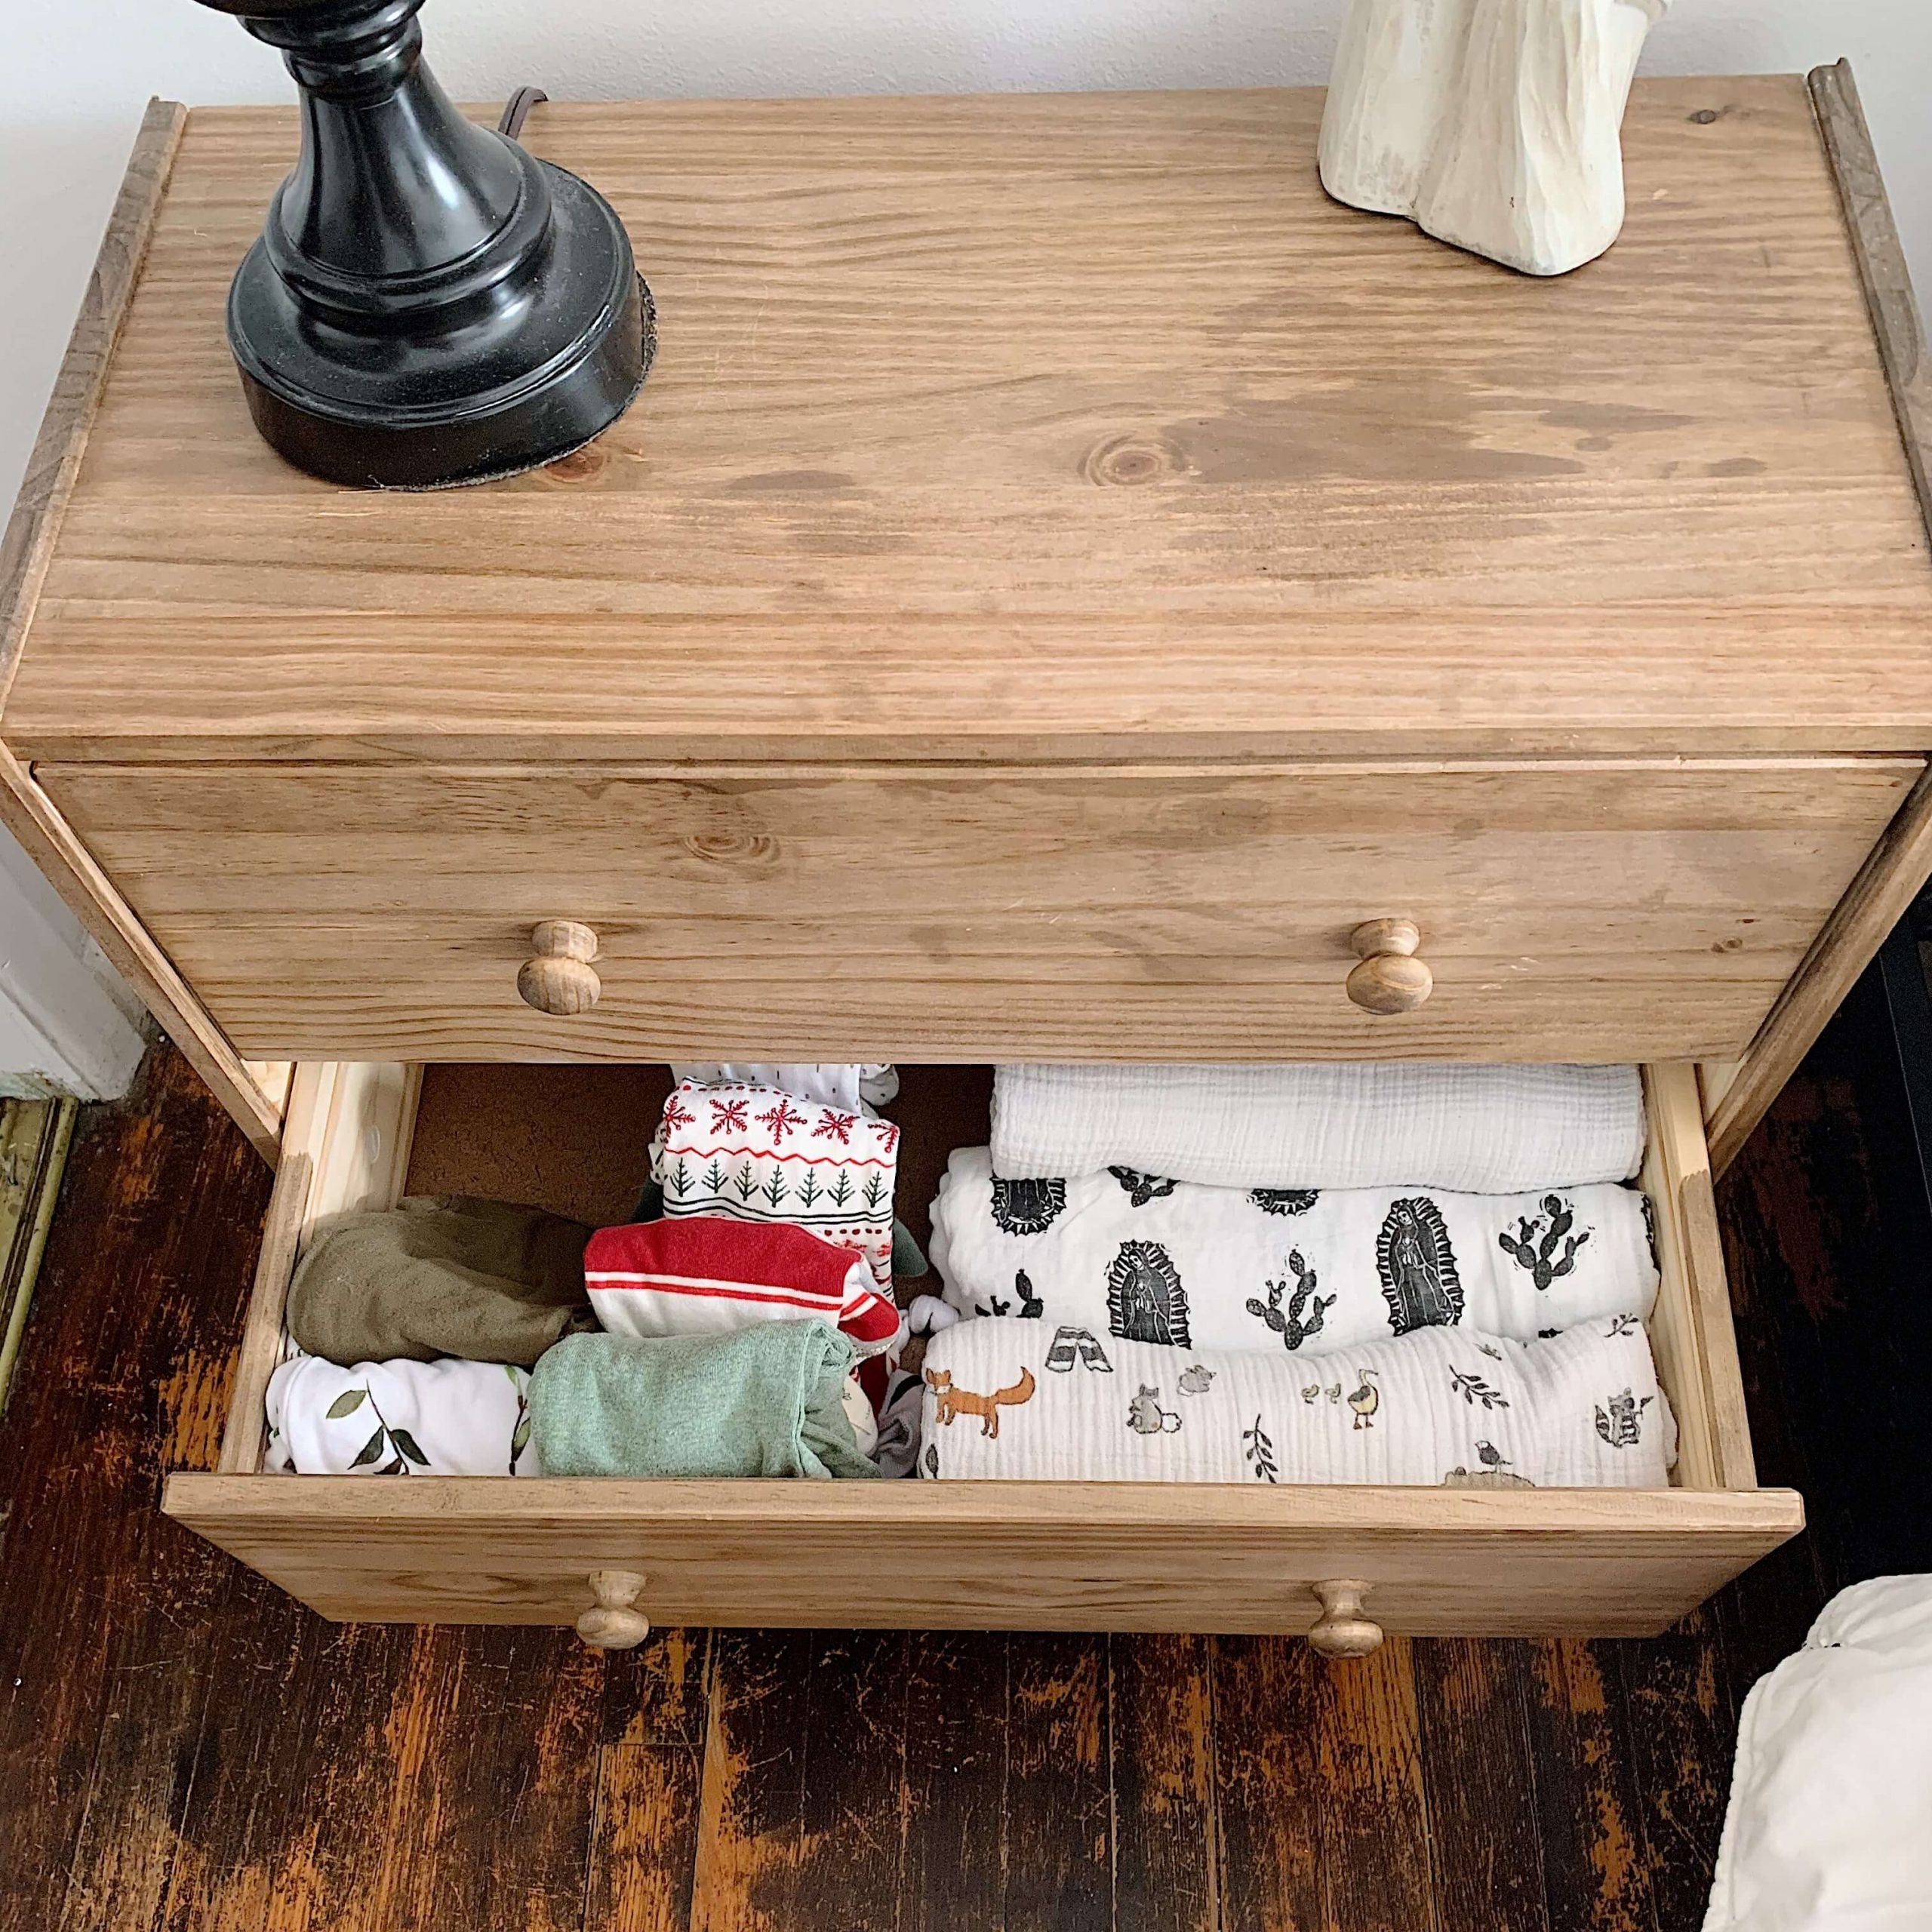 nightstand with baby clothes and blankets